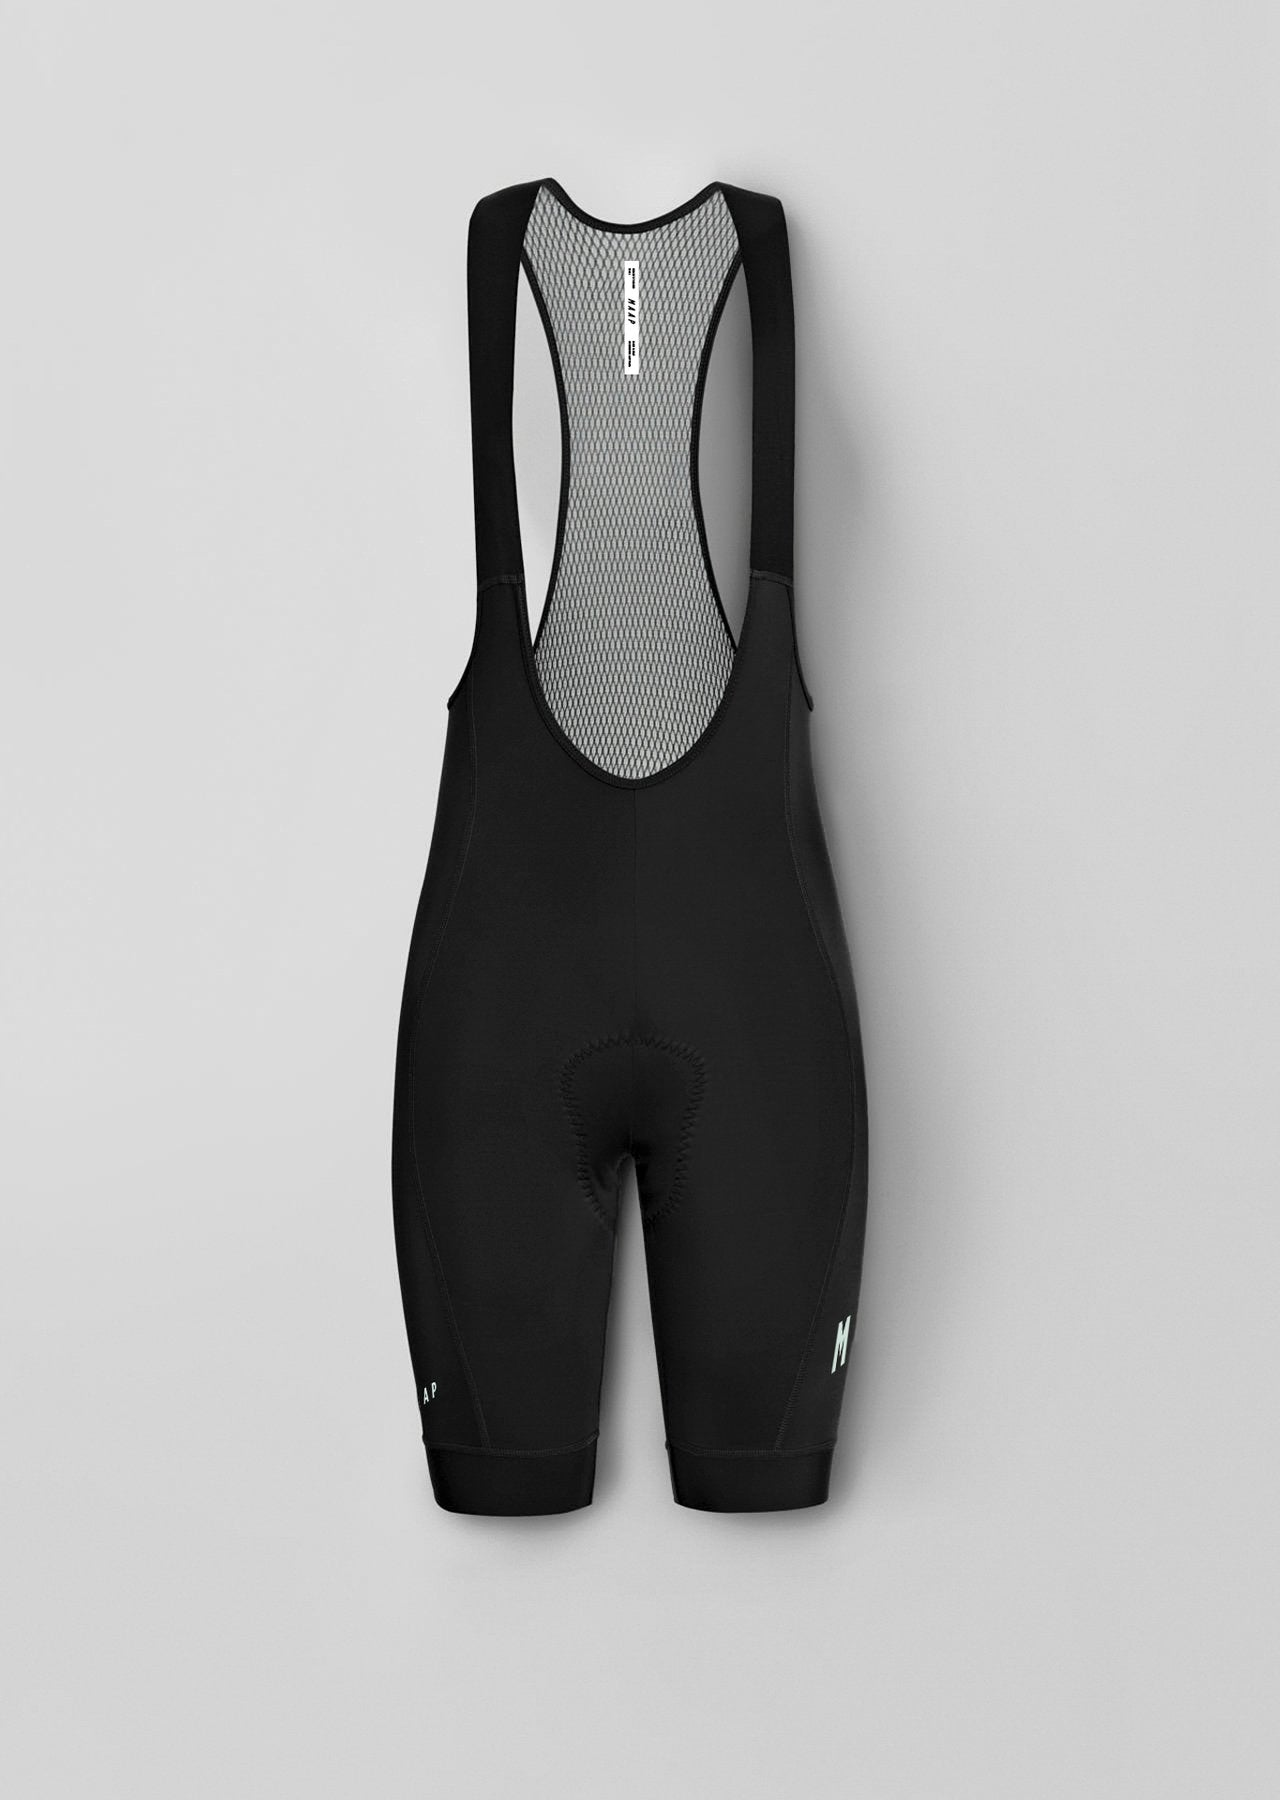 Women's Team Bib Short 3.0